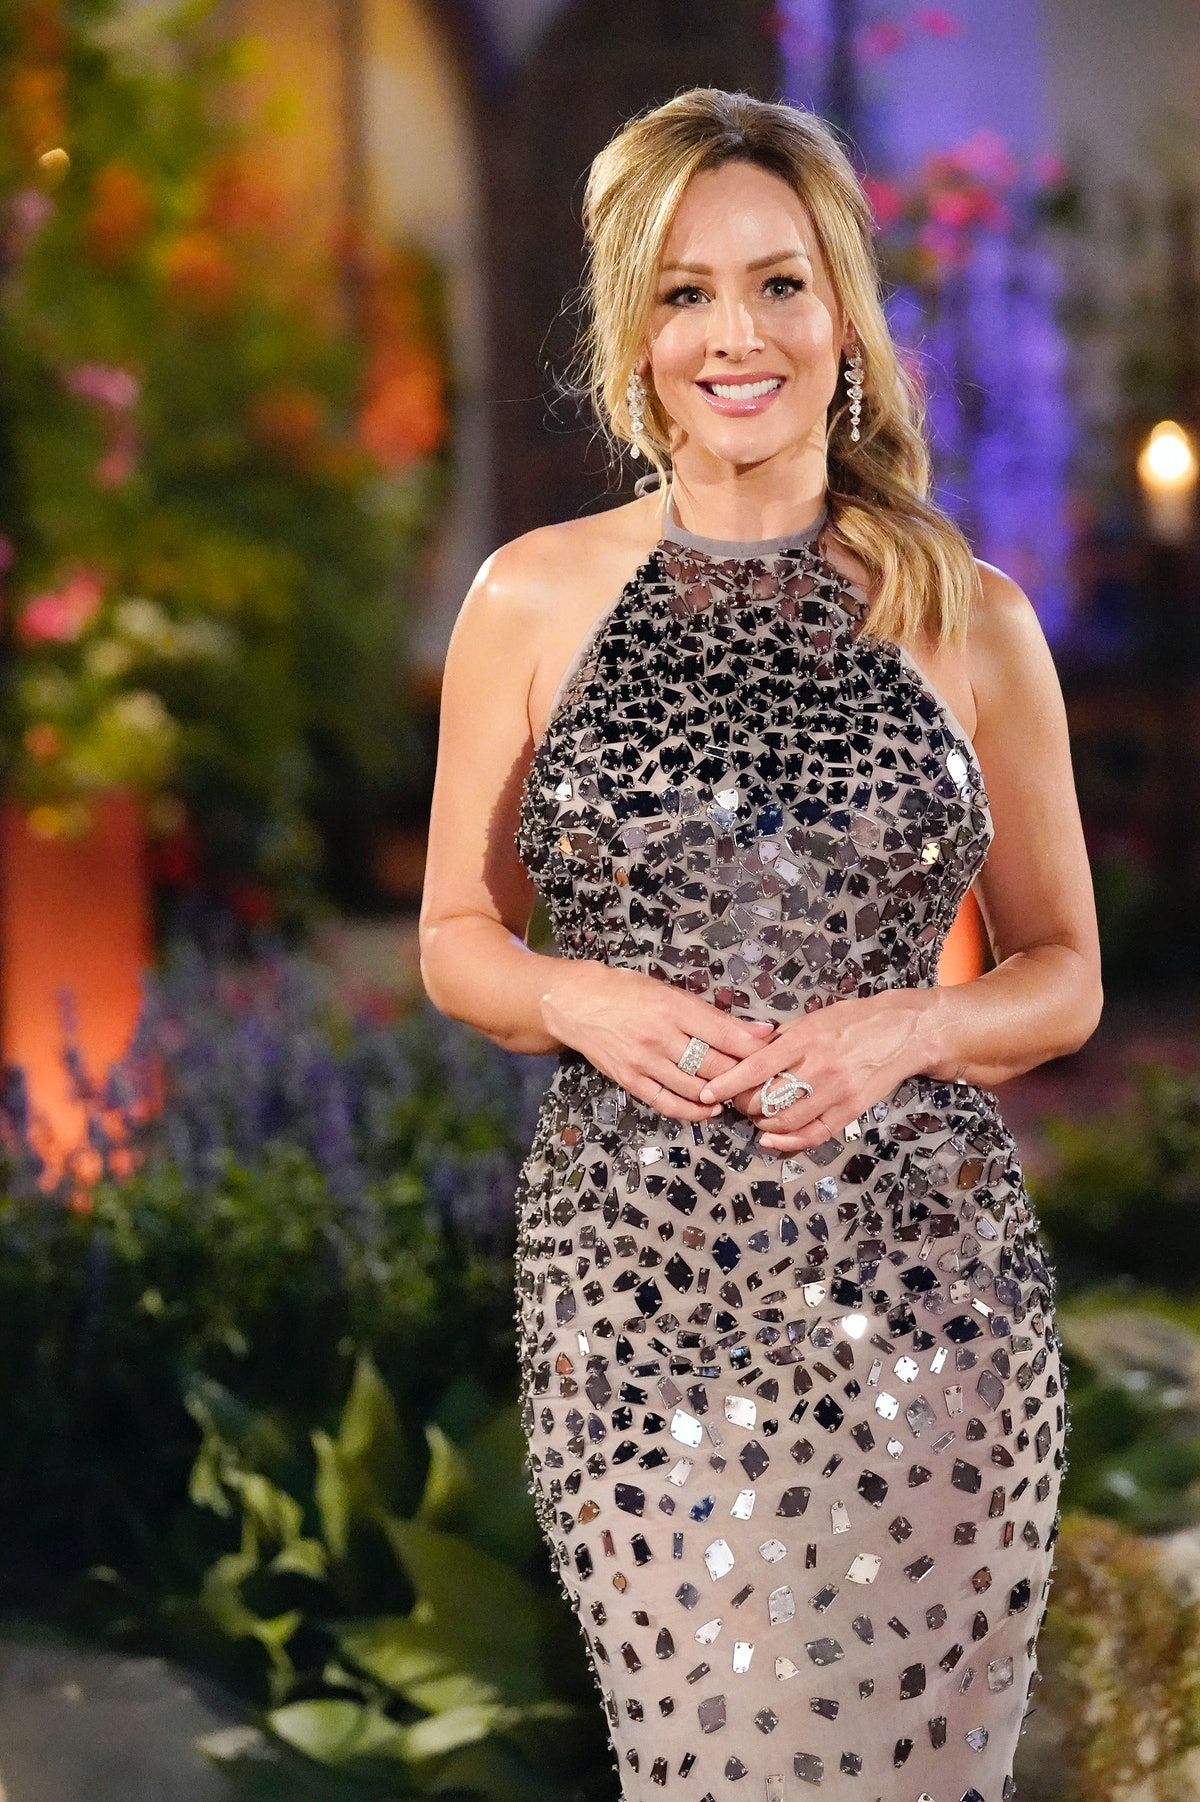 Clare Crawley was accused of lying about not attending her Senior prom on 'The Bachelorette'